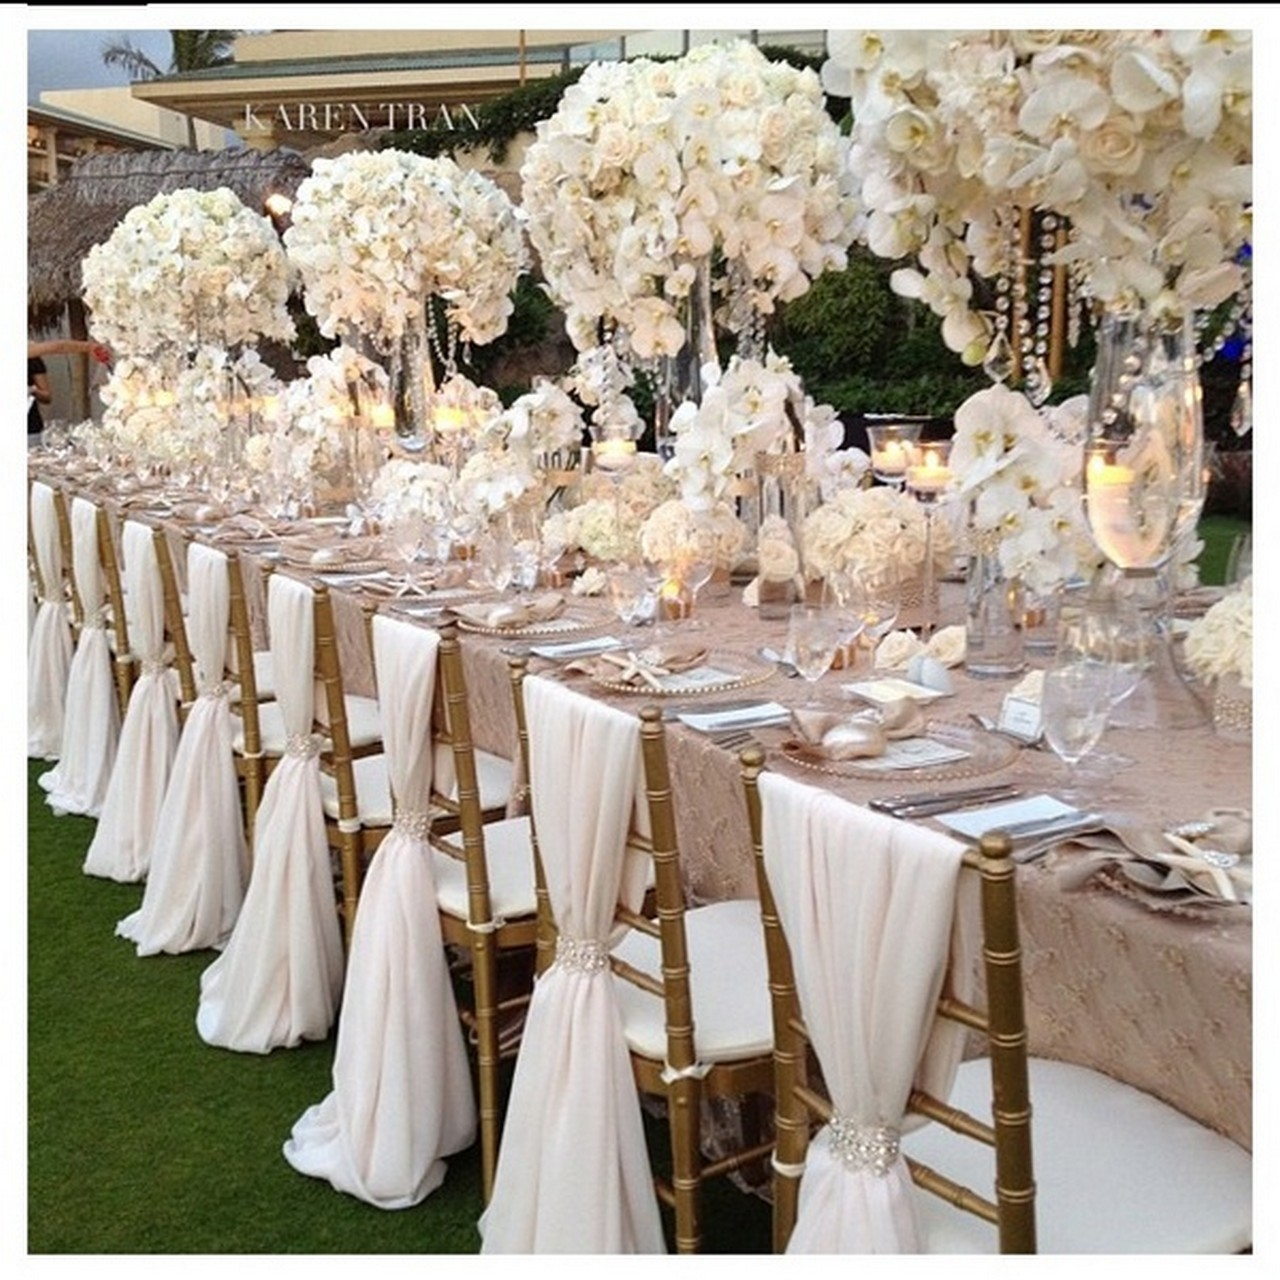 Sillas decoradas para eventos dale detalles for Sillas para bodas